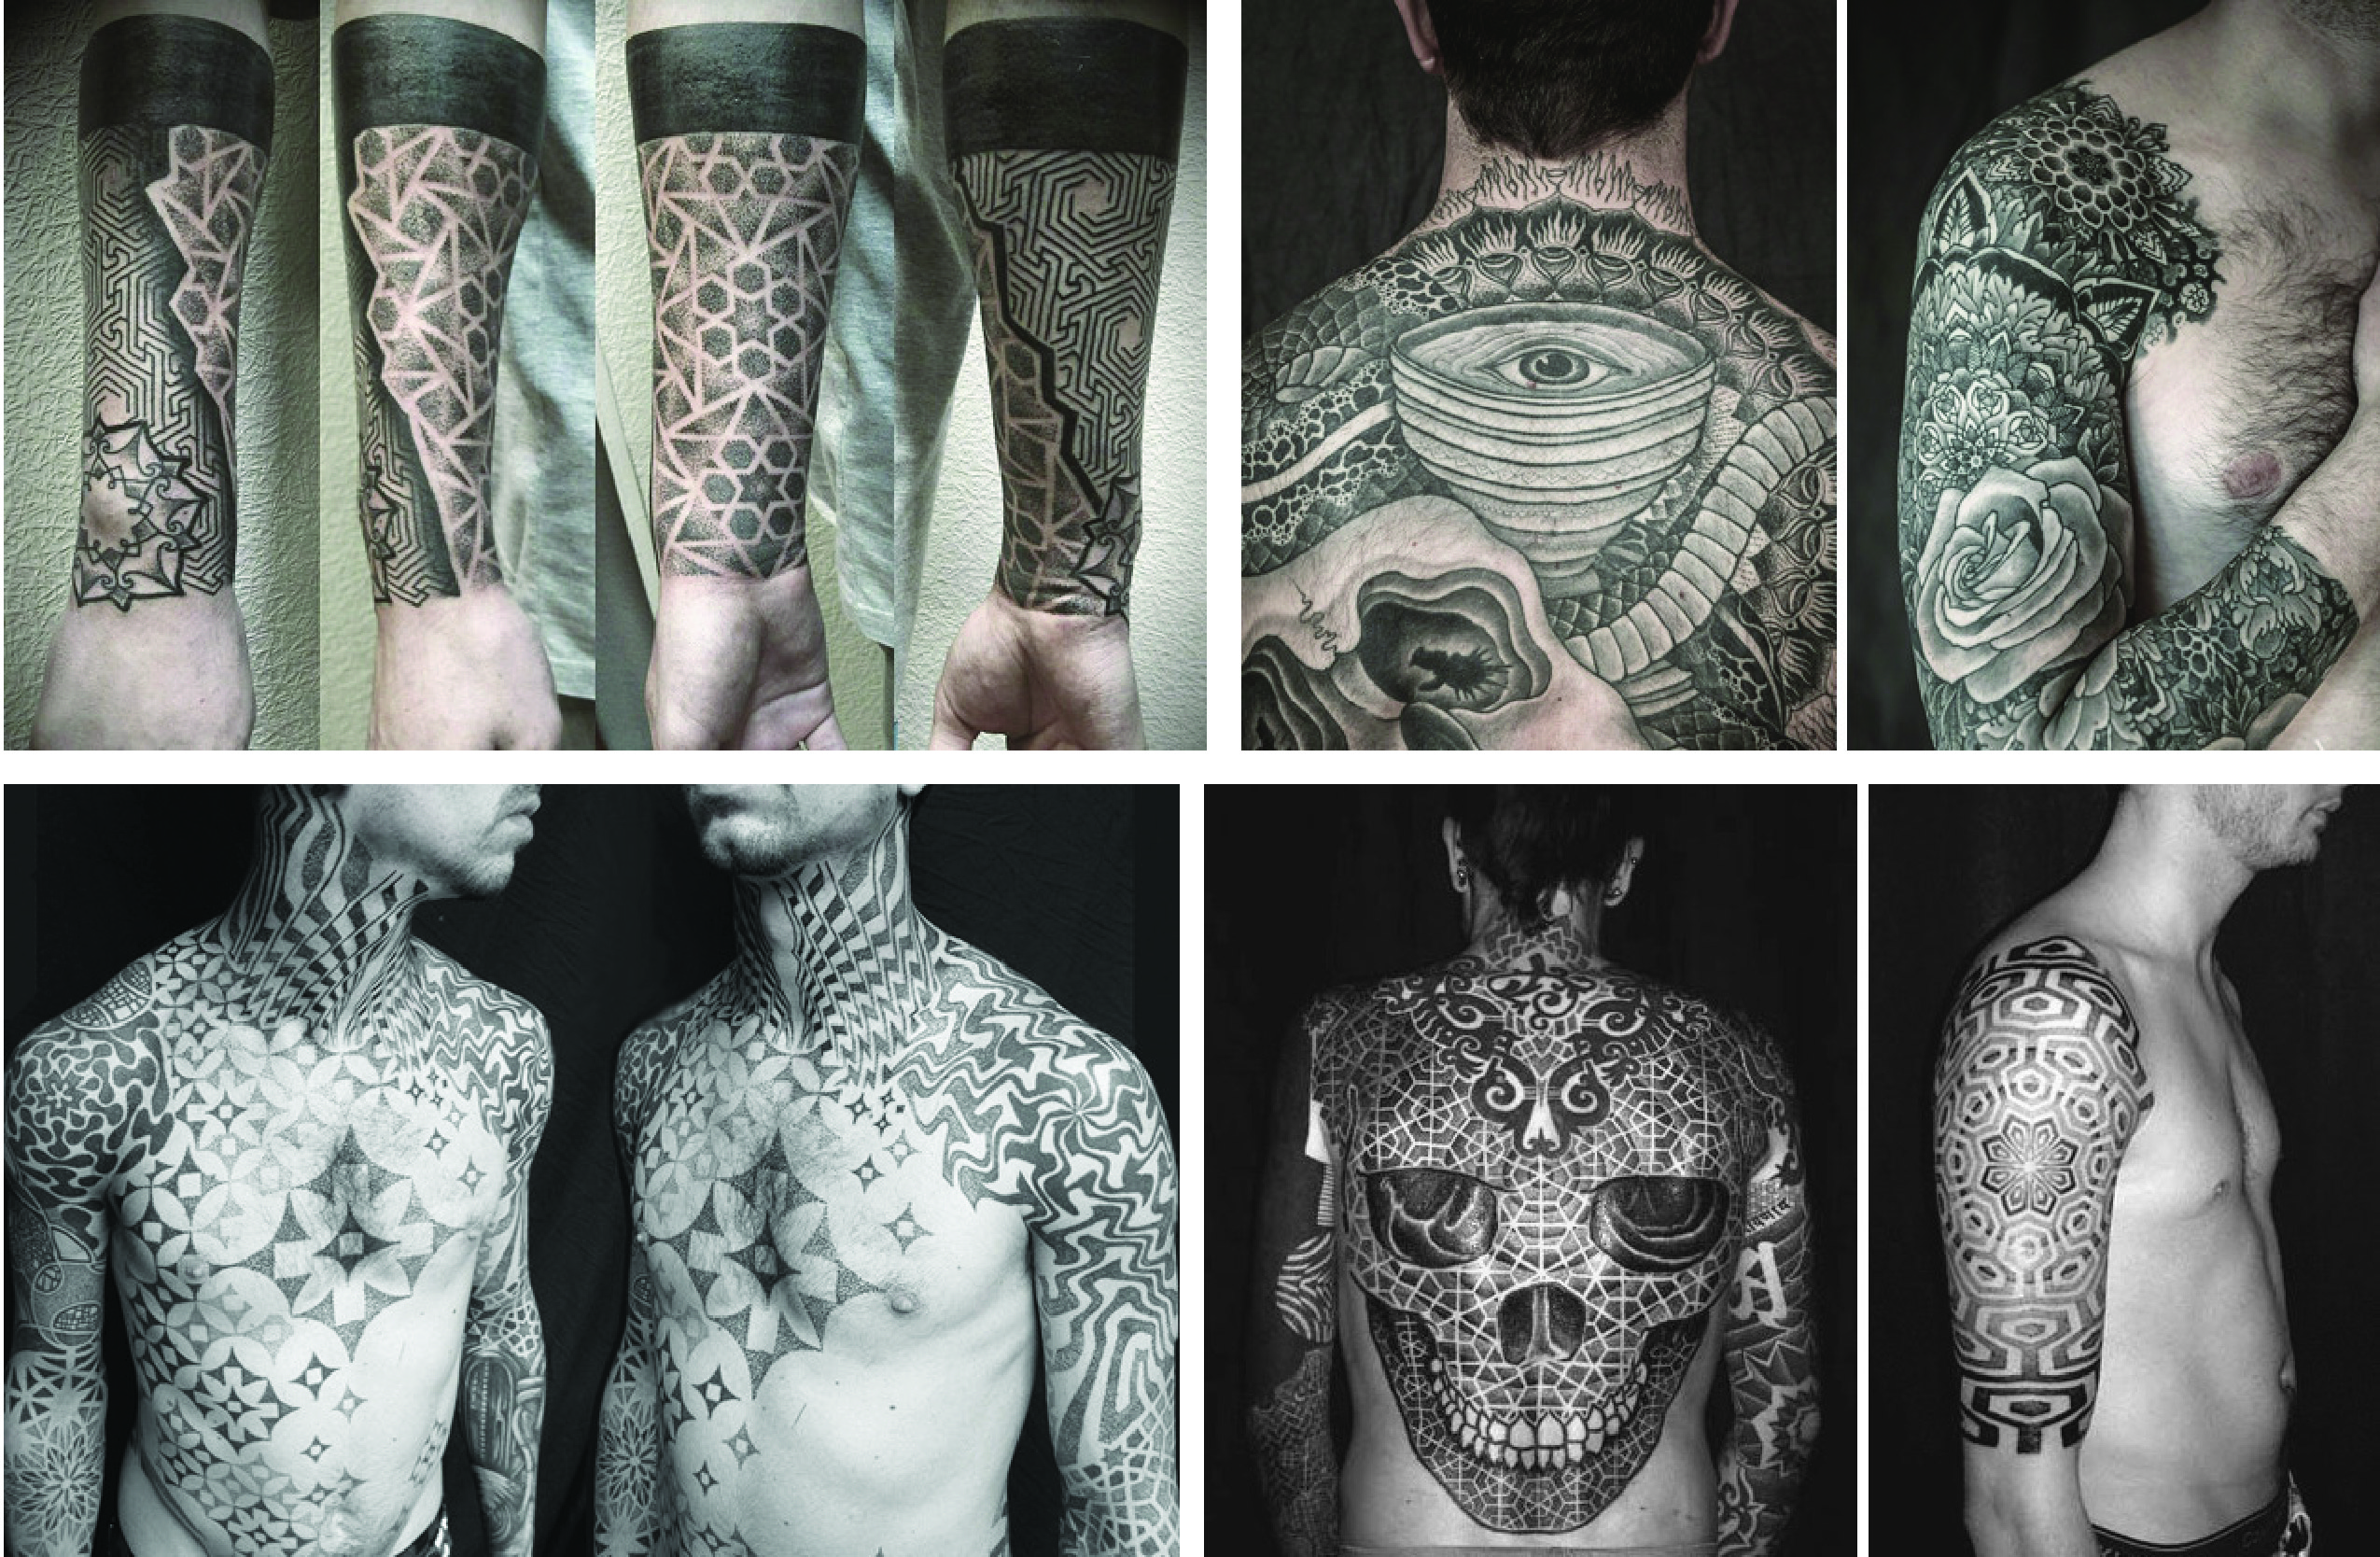 What should i write in conclusion to my research on tattoos?